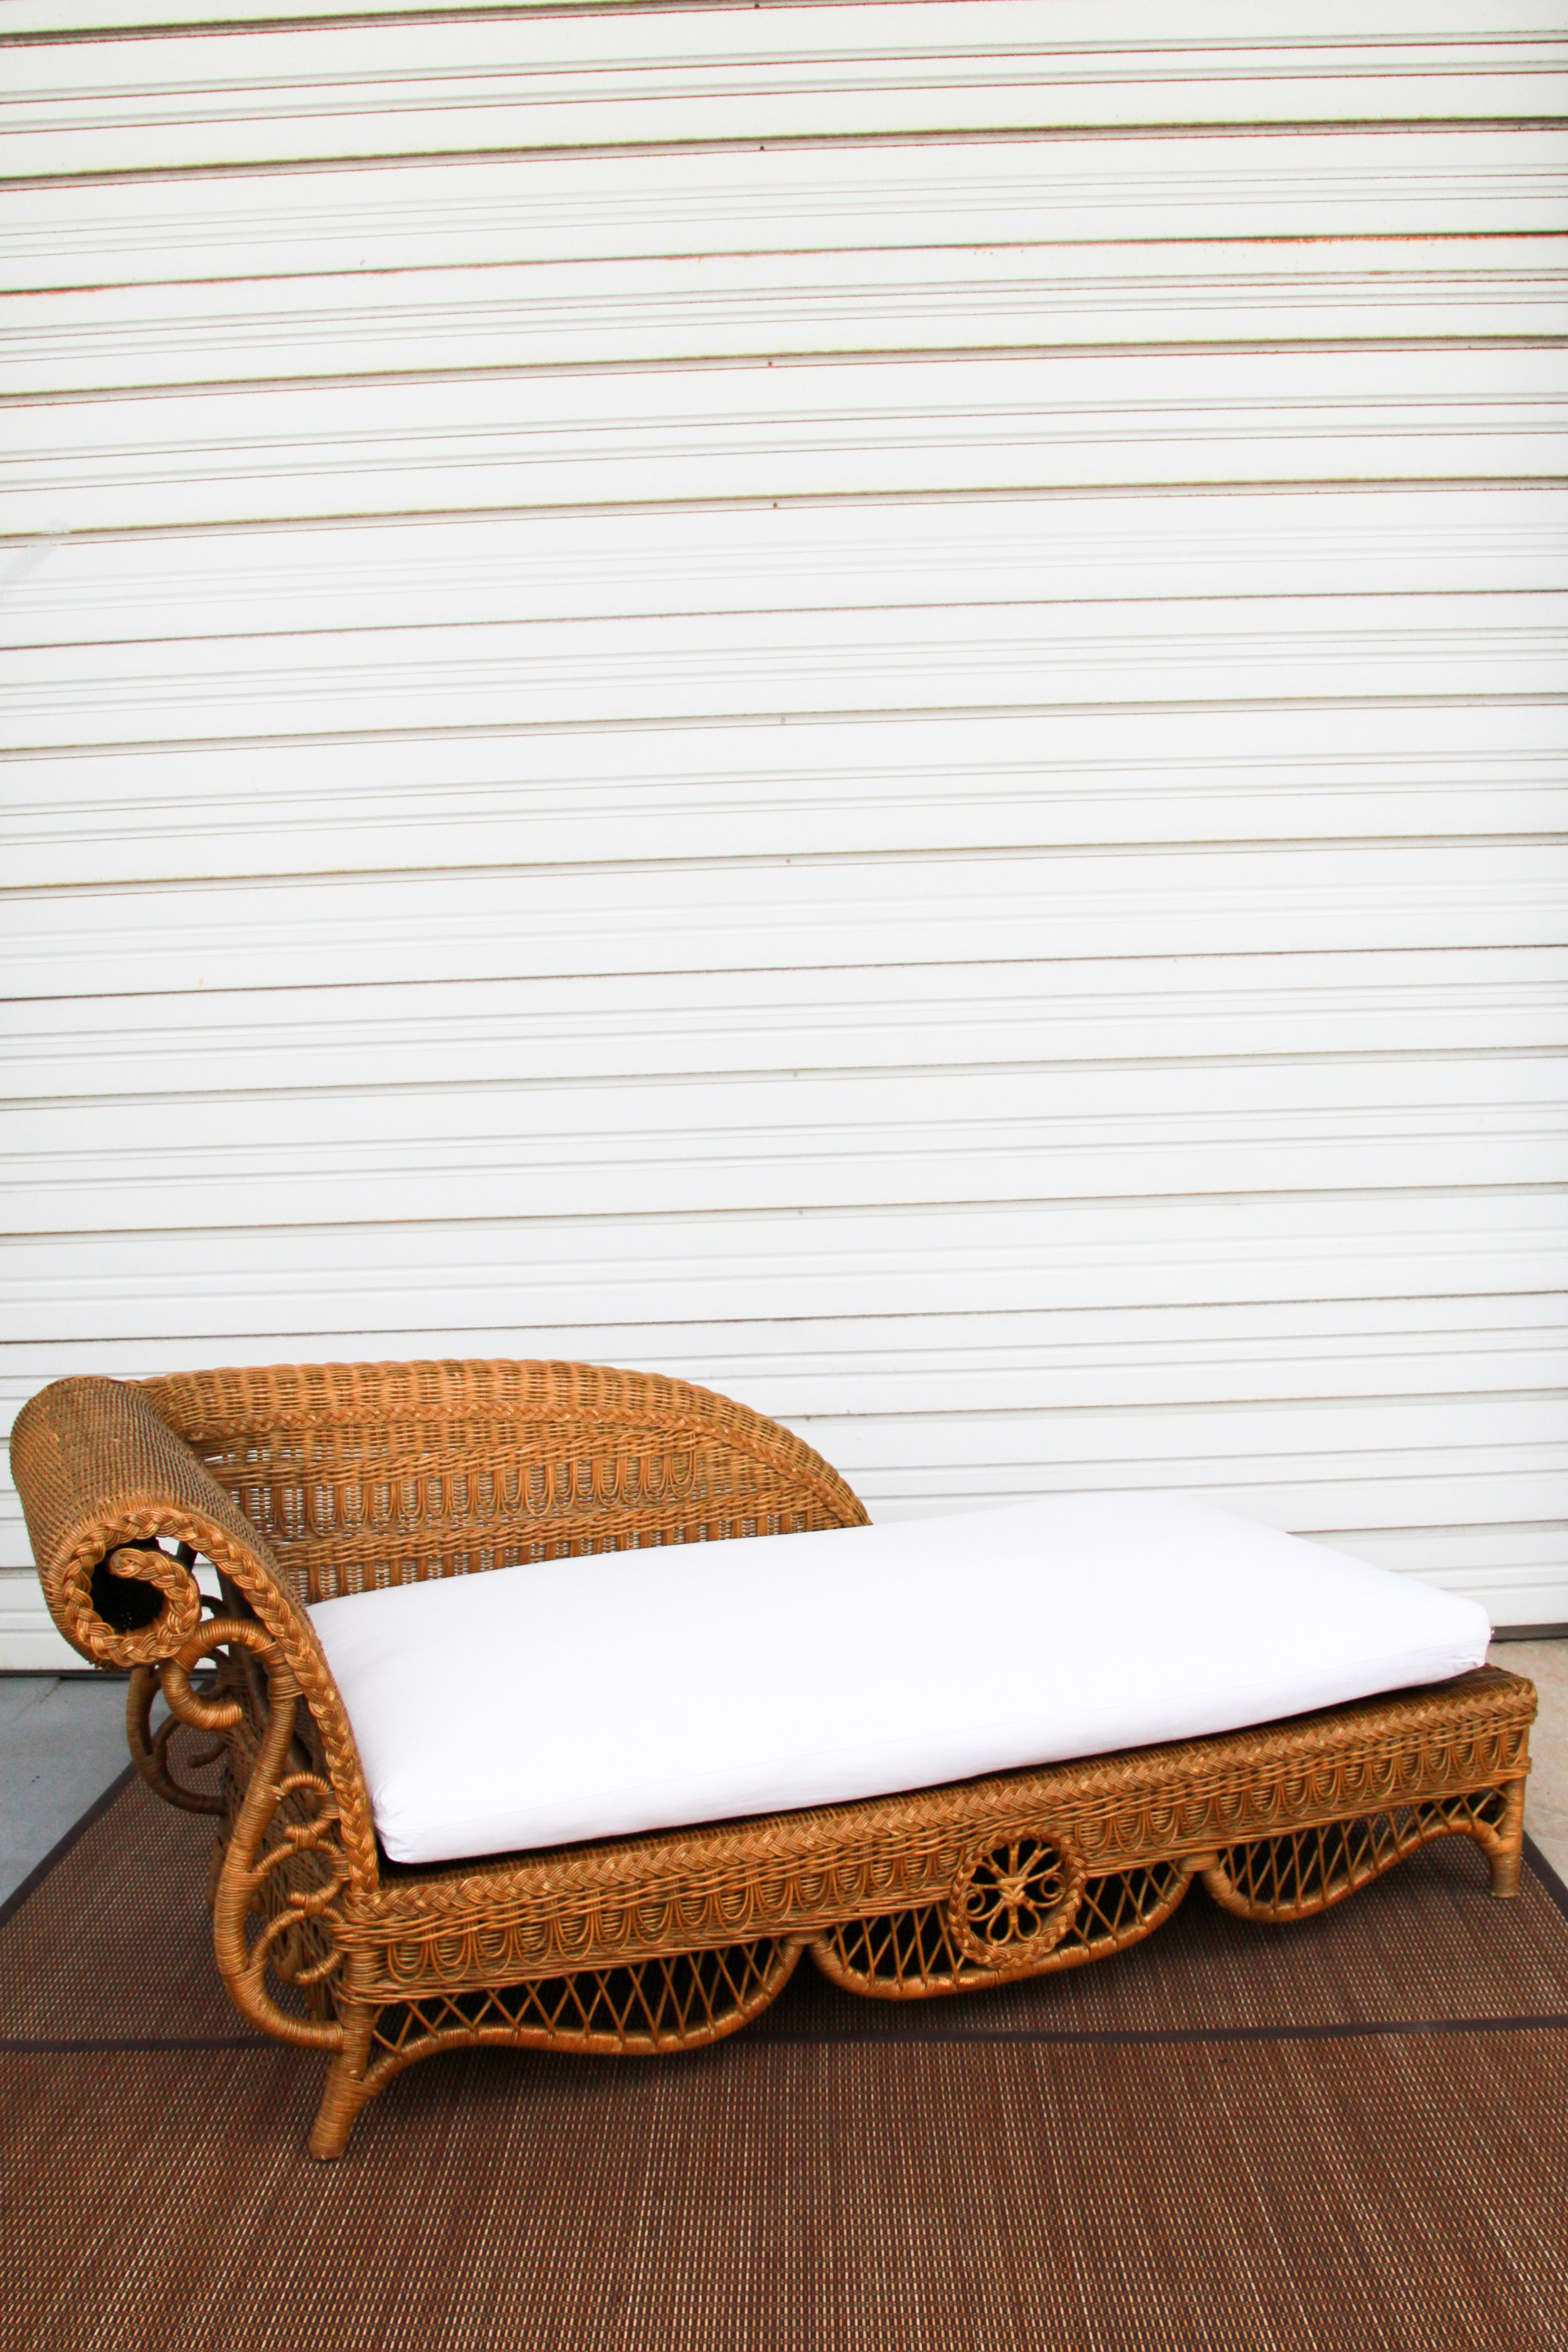 R.L Chaise Lounge Qty:2